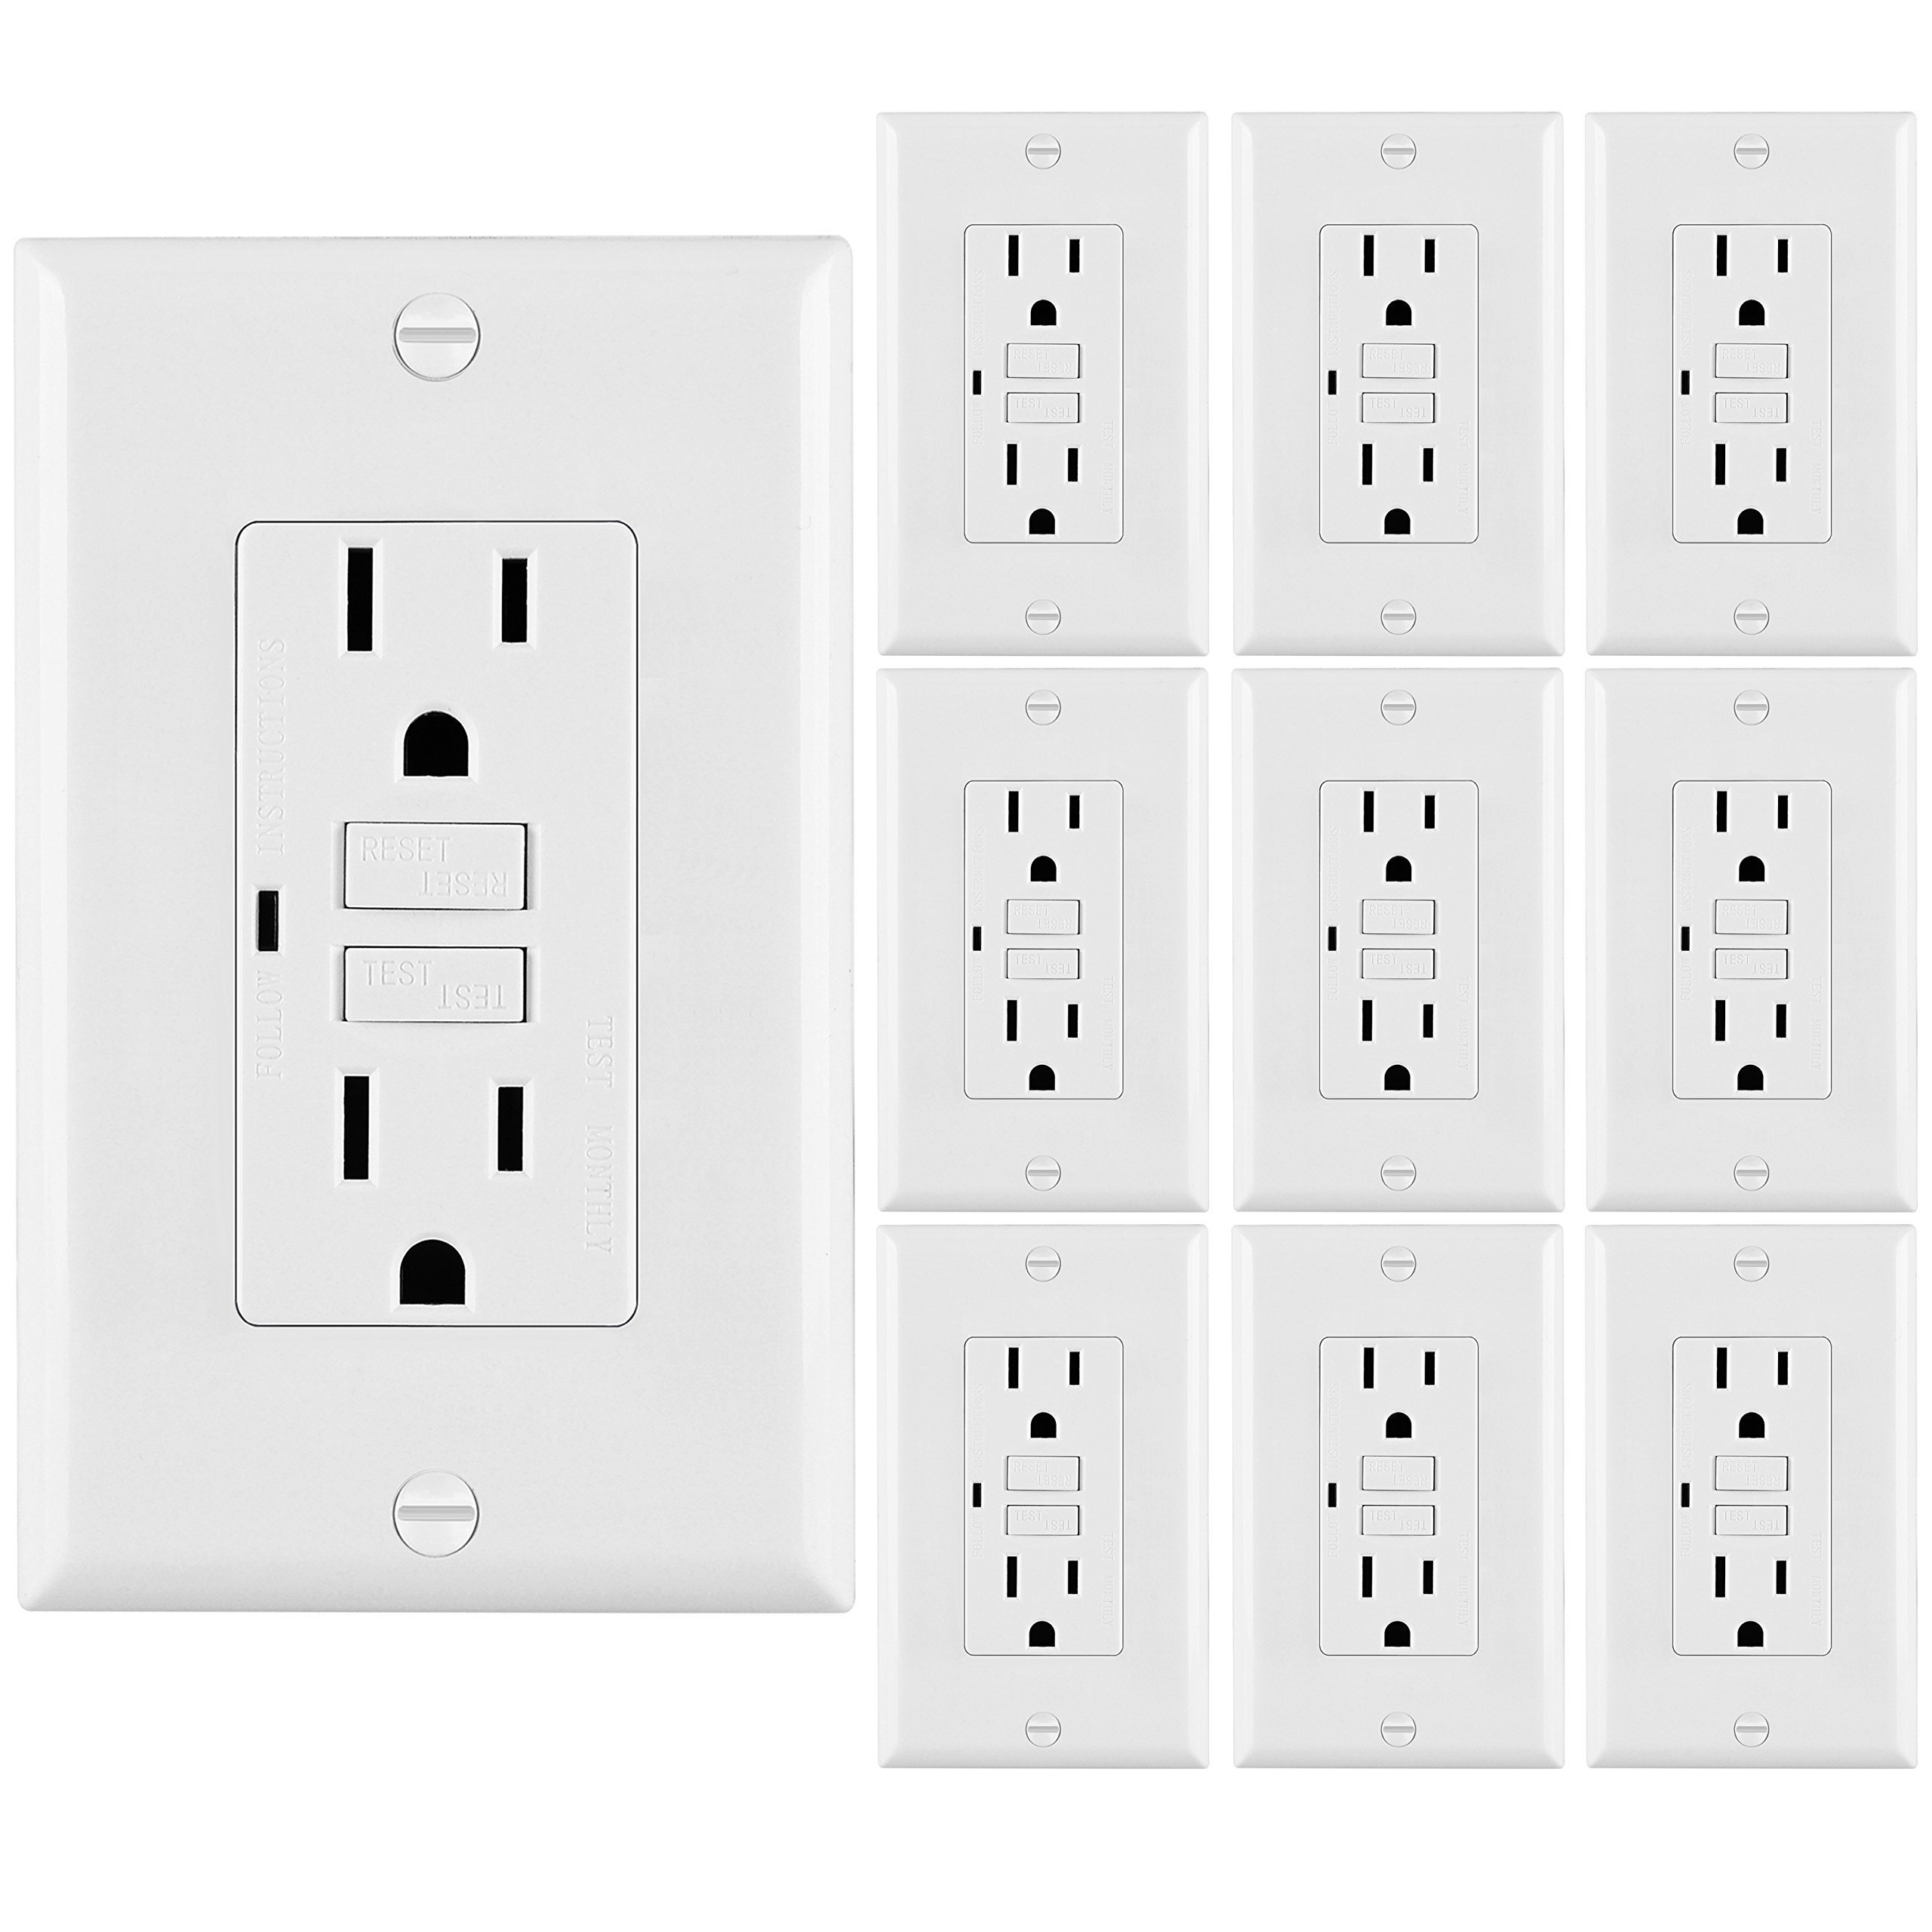 [10 Pack] BESTTEN Auto-Test GFCI, 15 Amp, Non-Tamper-Resistant Receptacle Outlet with LED Indicator, Decor Wall Plate Included, UL Listed, White